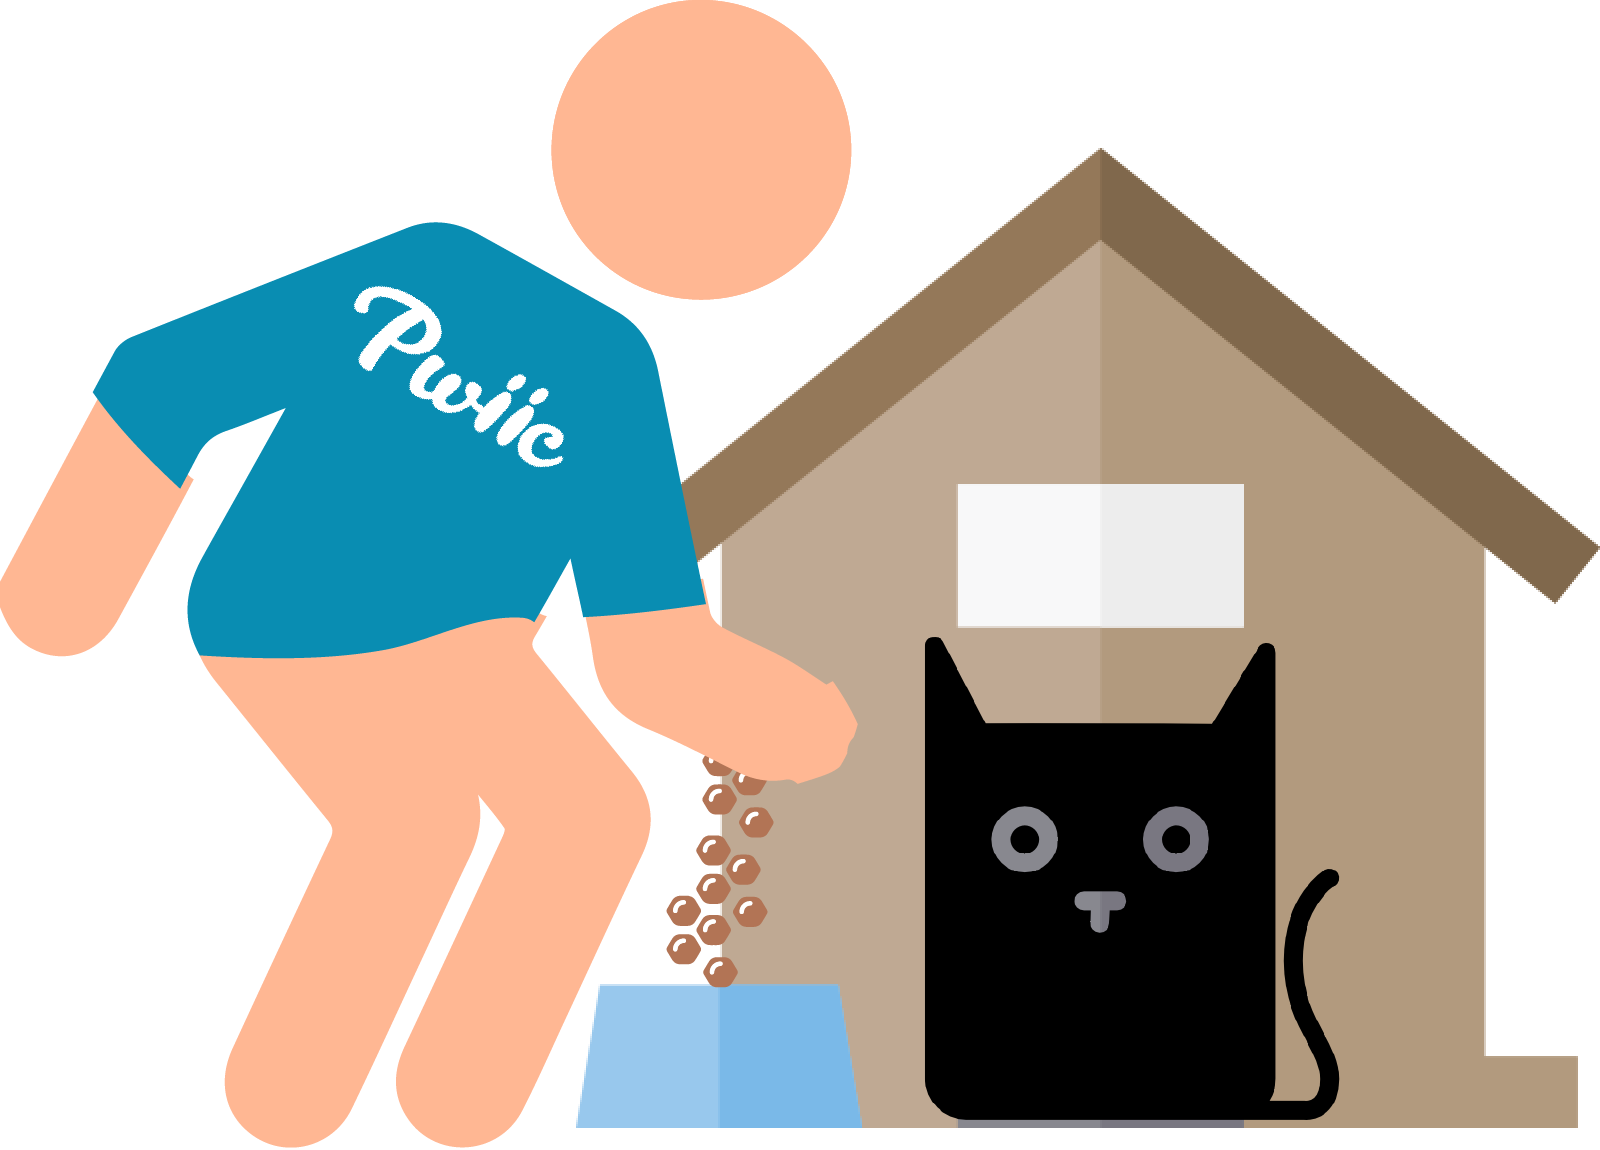 https://pwiic.com/fr/cpeltier/Pension-pour-chats---Hotel-pour-chats